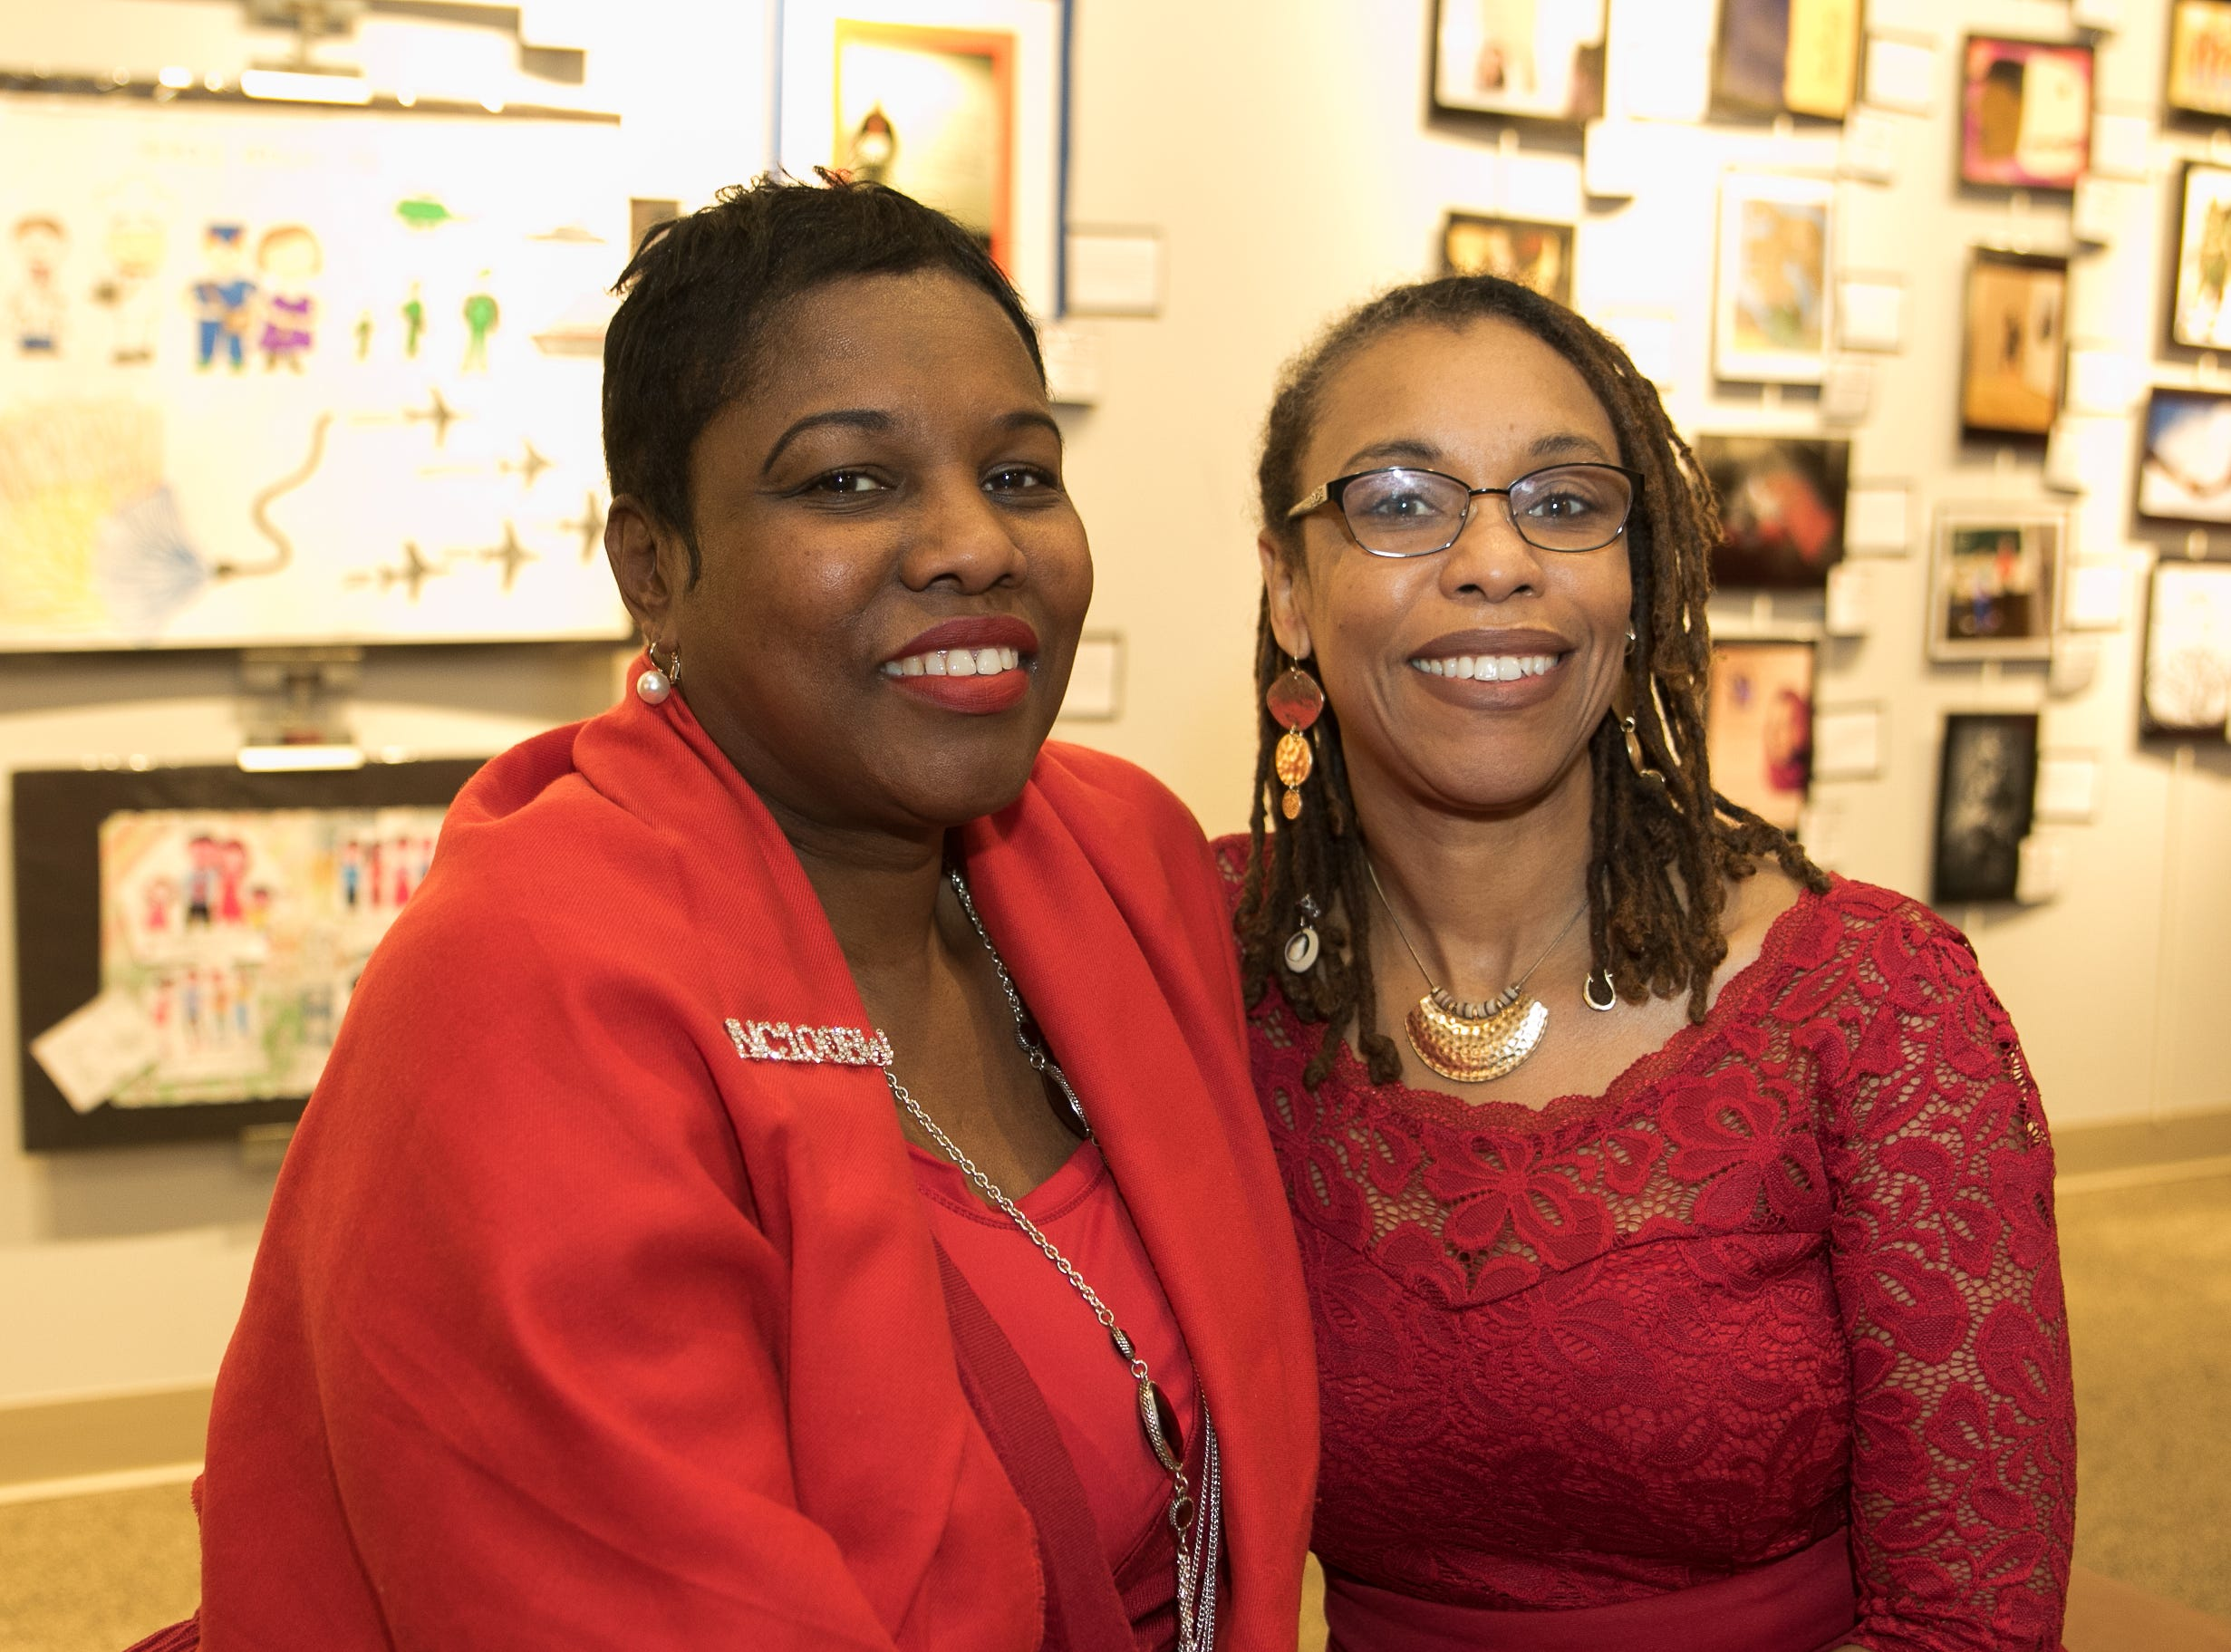 Cynthia Patterson, Judi Ramos. The National Coalition of Black Women of Bergen and Passaic Counties held its annual Heart Healthy Go Red Event at The Hackensack Performing Arts Theater. 02/01/2019